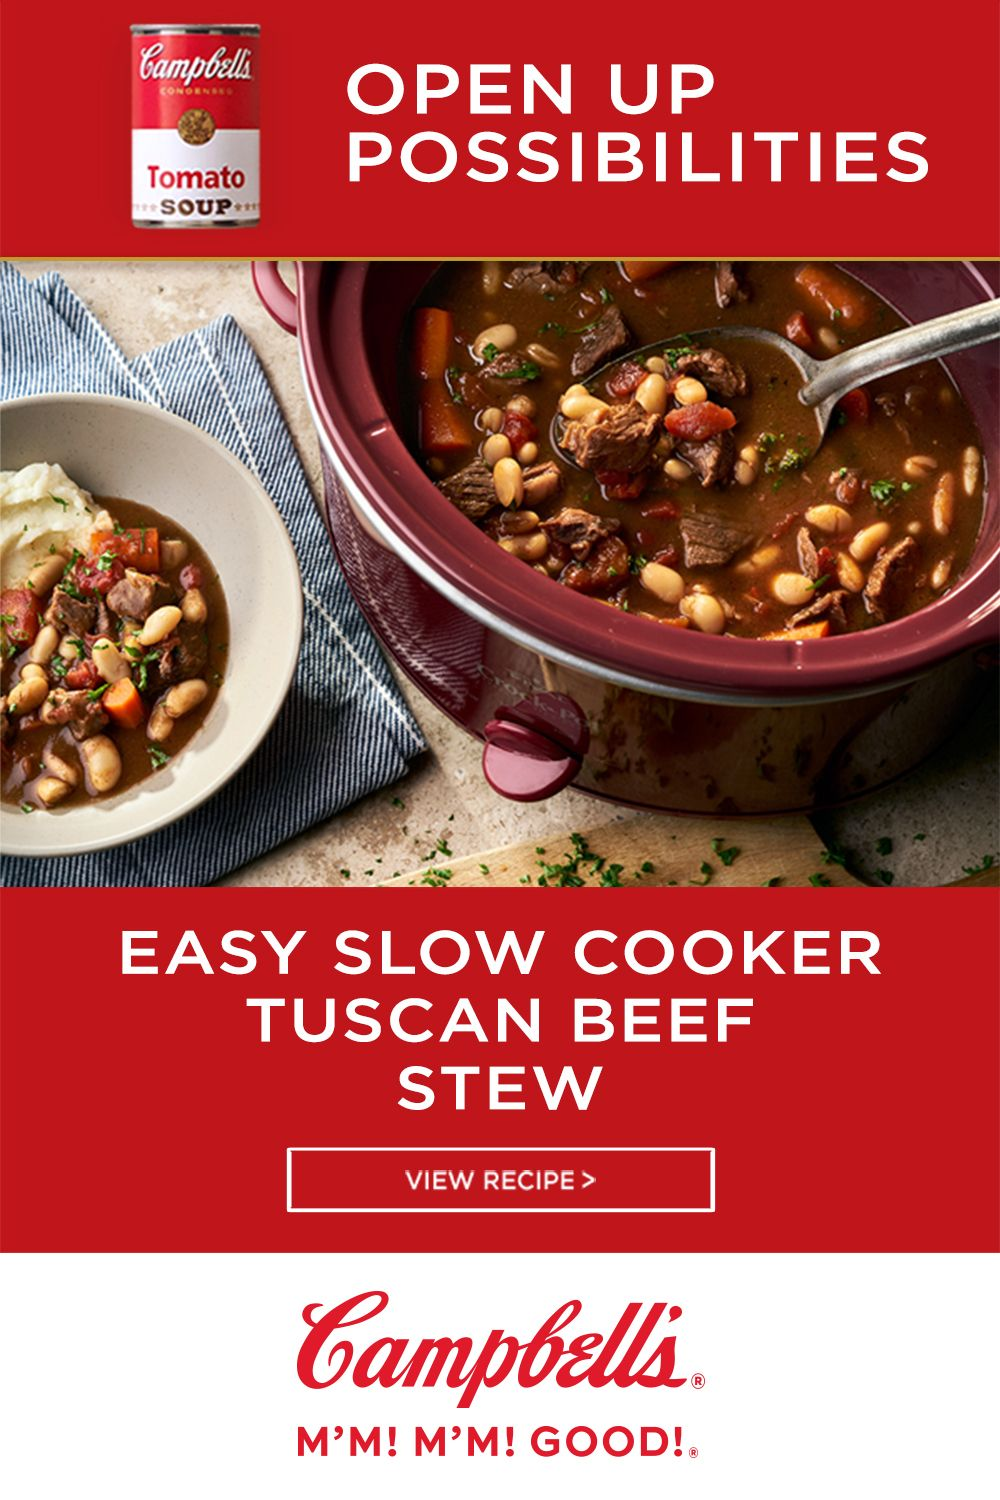 Easy Slow Cooker Tuscan Beef Stew Recipes Tuscan Beef Stew Crock Pot Cooking